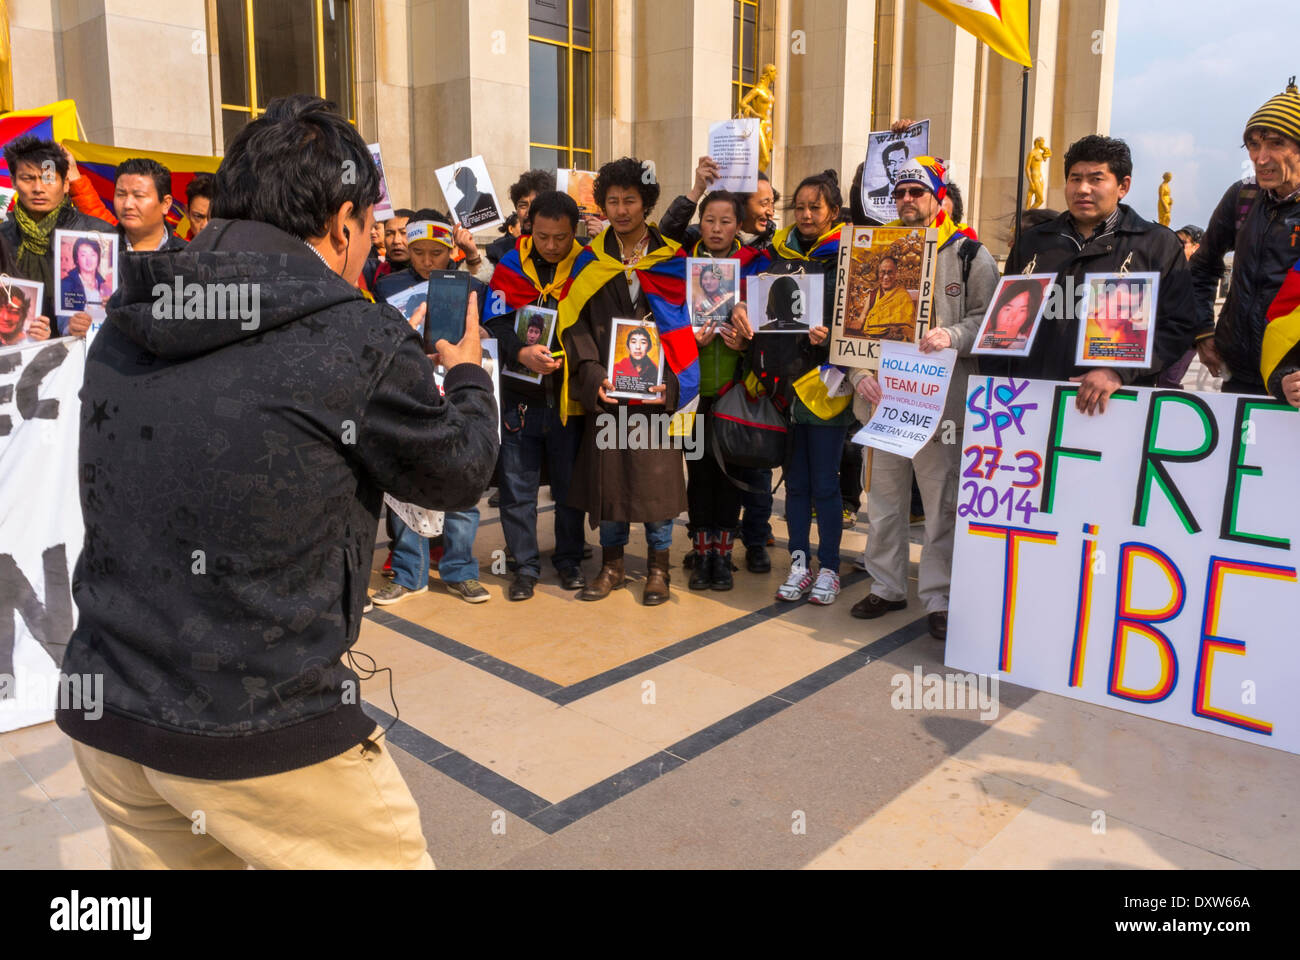 The Tibetan, Taiwanese Ethnic Communities of France, and Friends called for French citizens to mobilize during the visit of Chinese President in Paris, Holding Protest Signs and Victim's Photos, refugees men Stock Photo